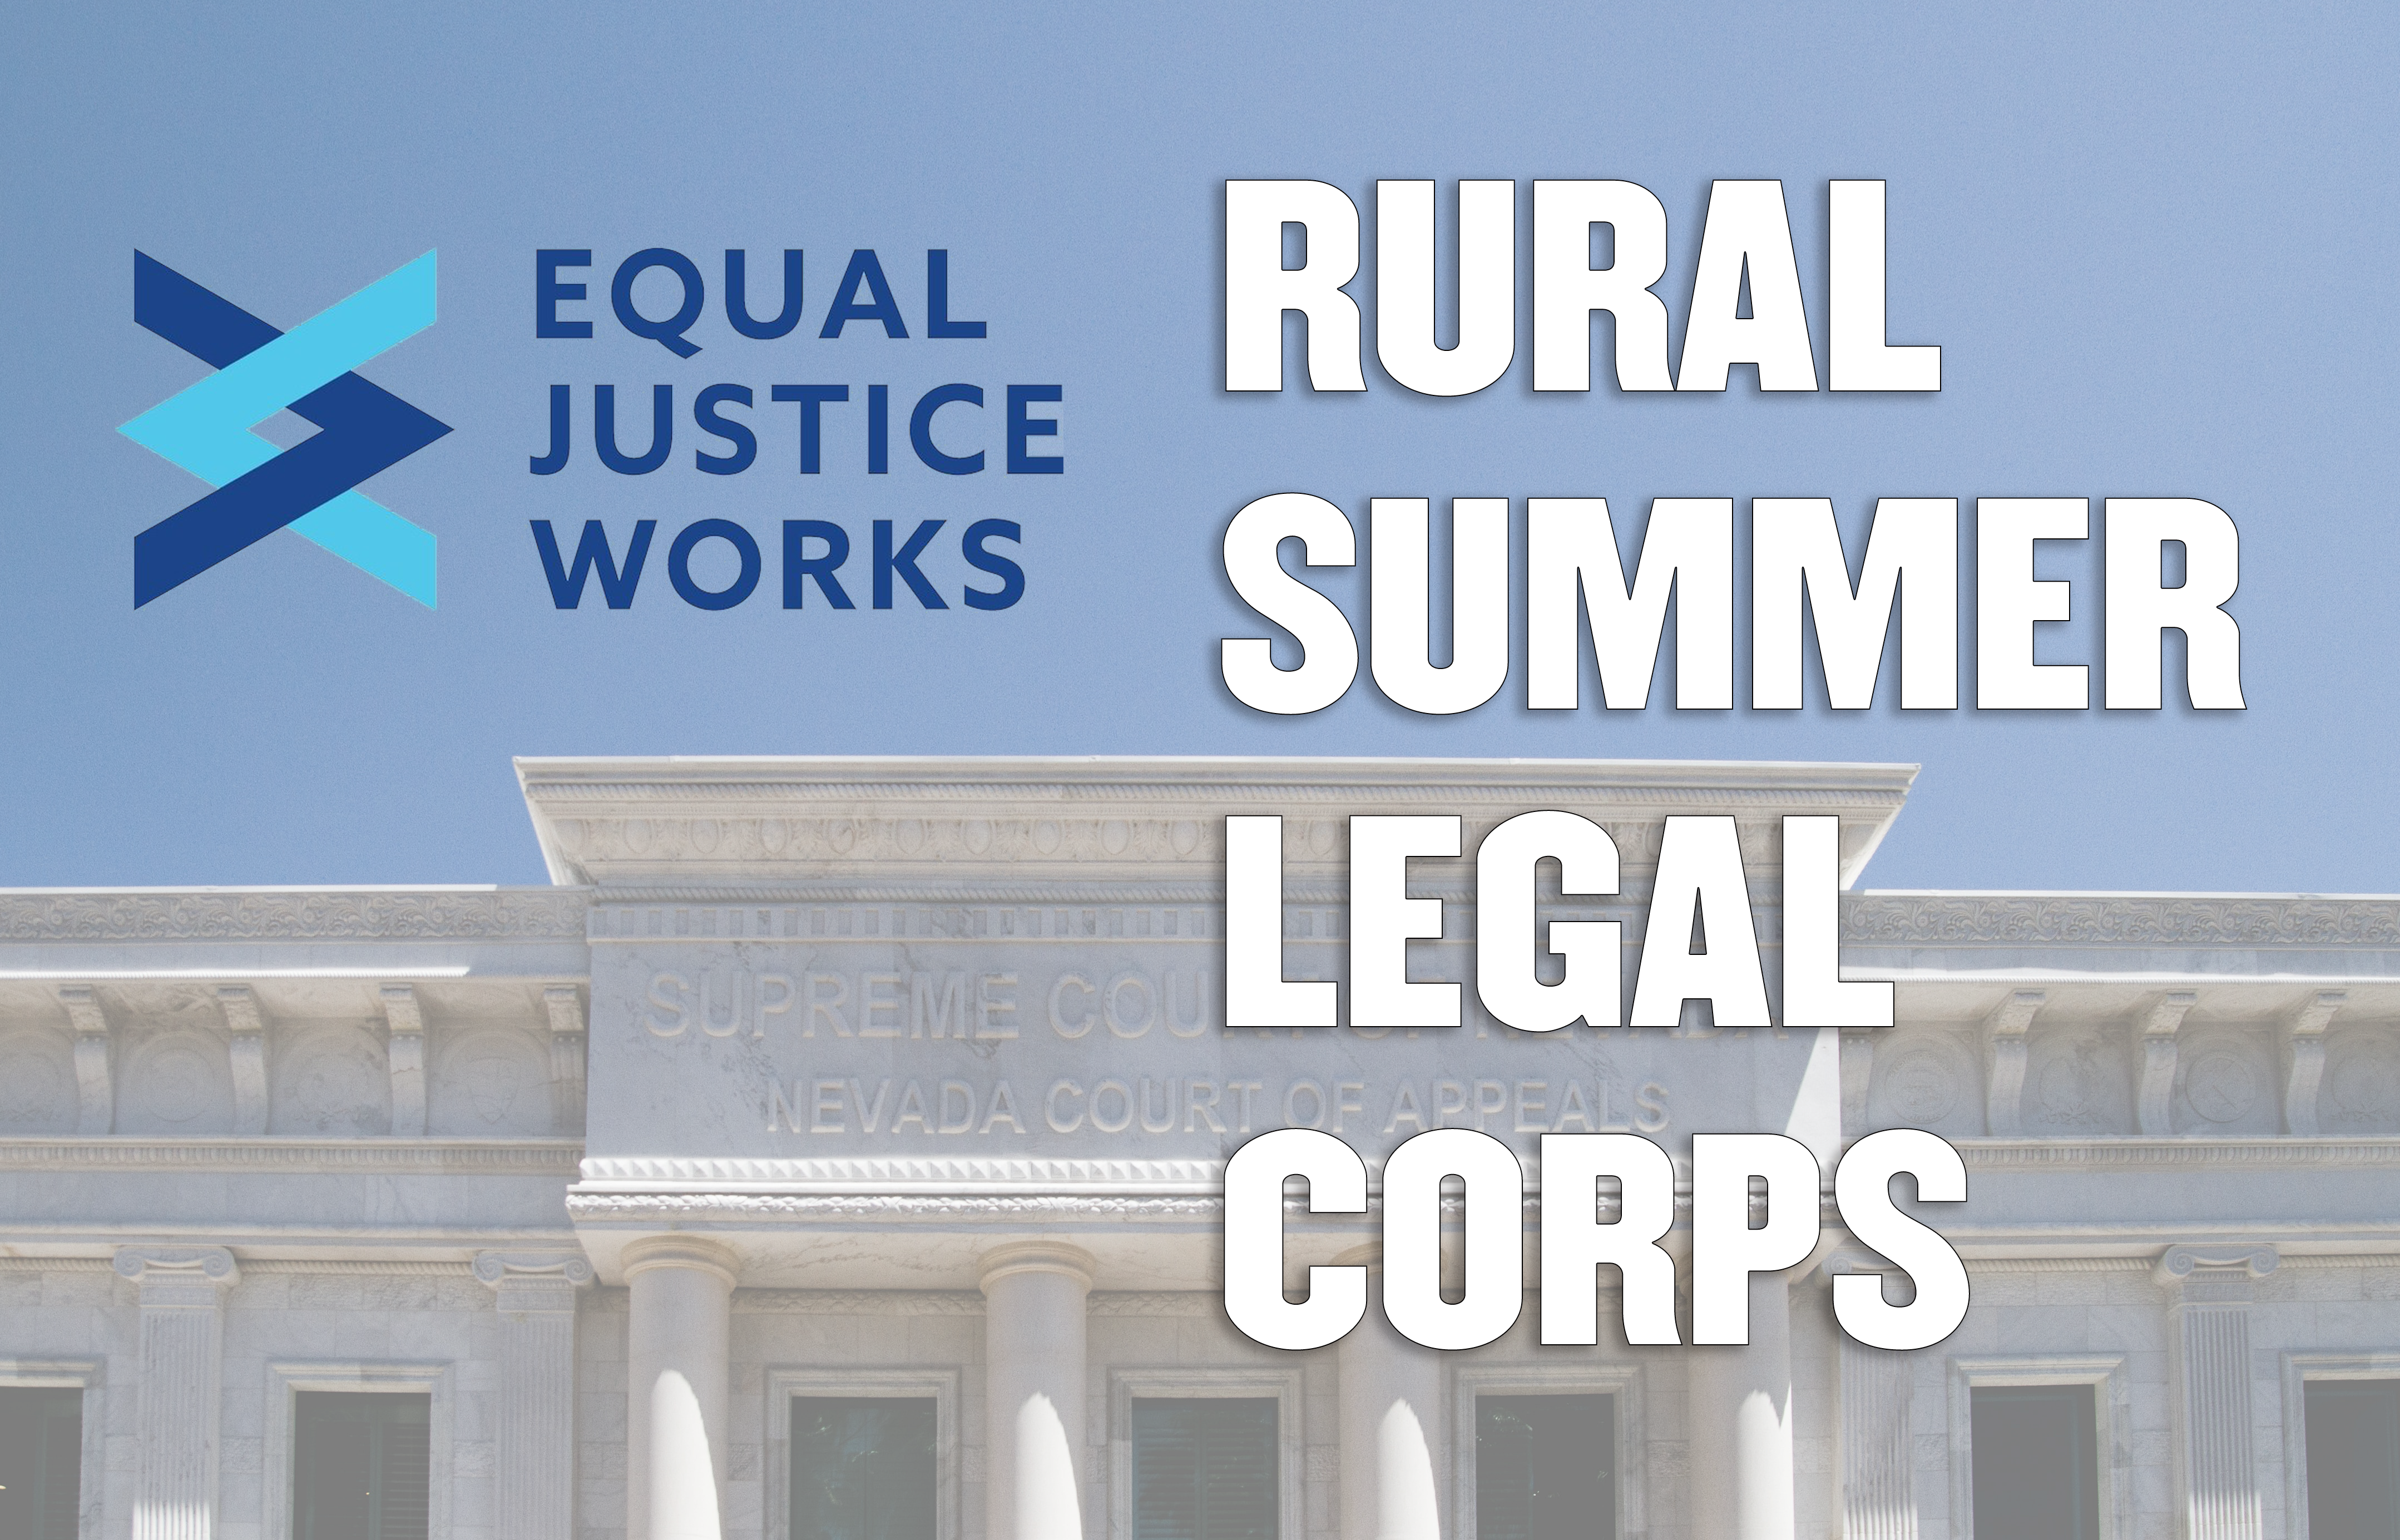 Rural Legal Corps